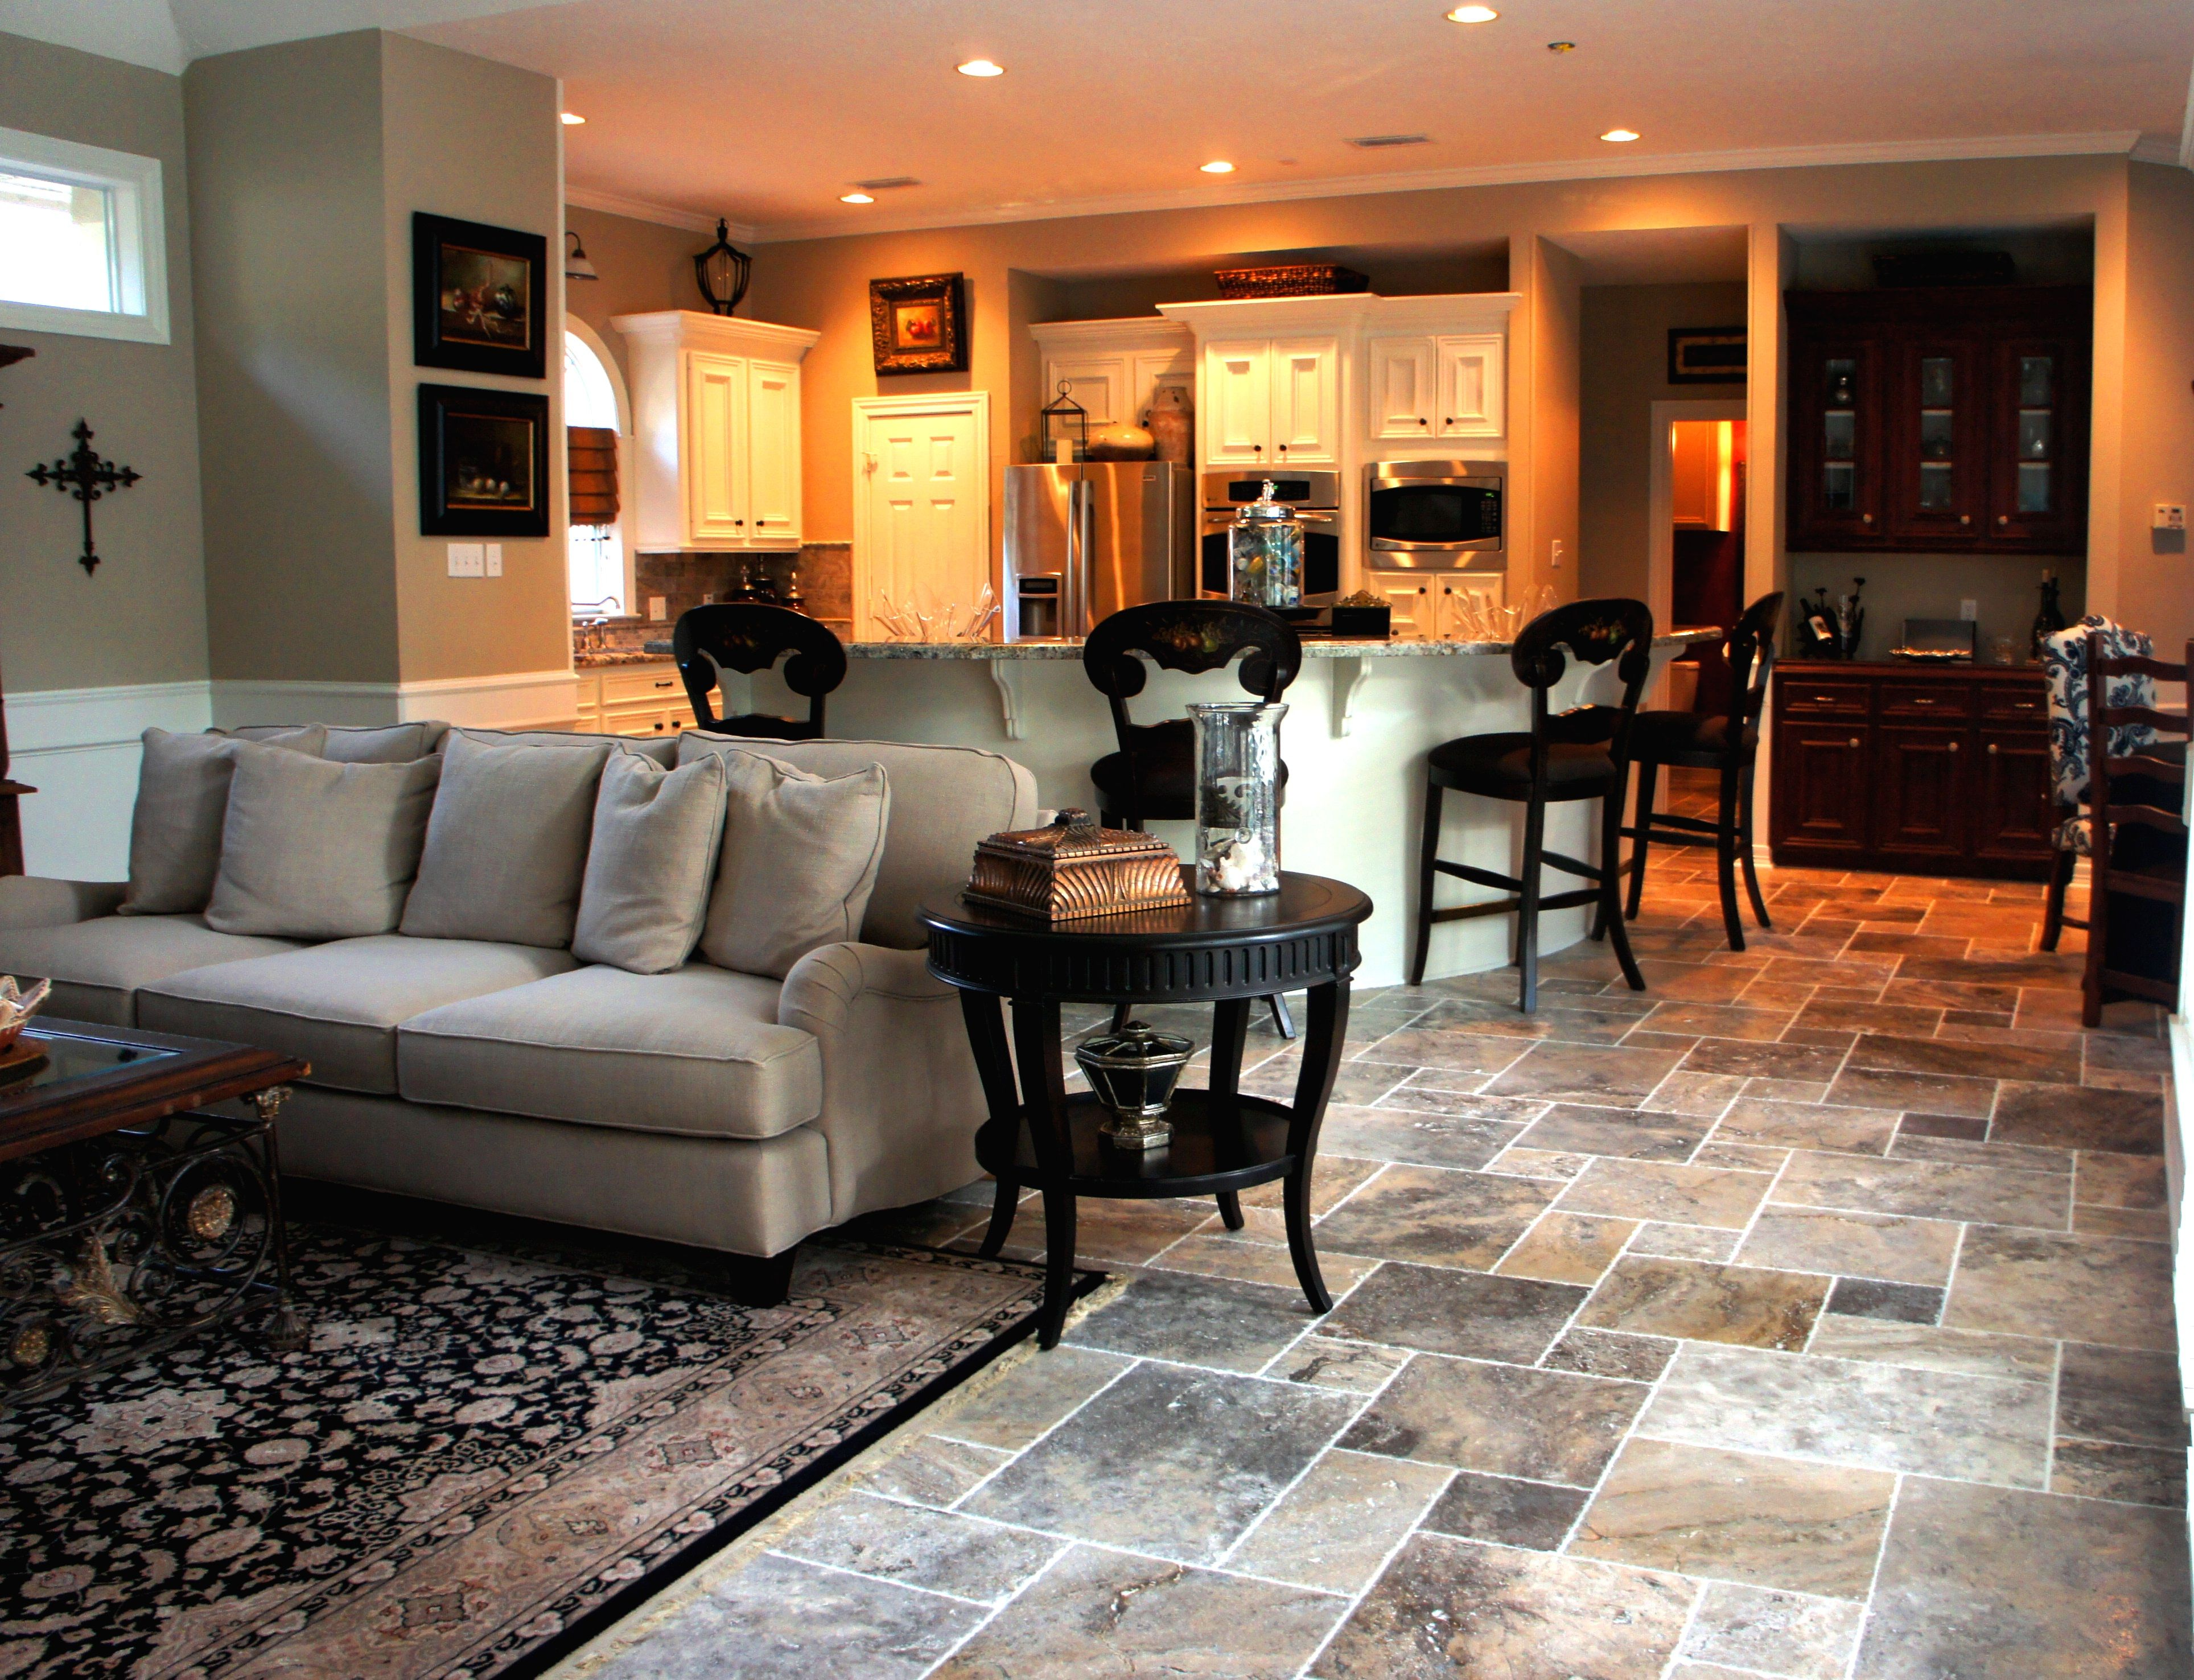 Travertine Tile Chiseled French Pattern For The Living Room And Kitchen Floors